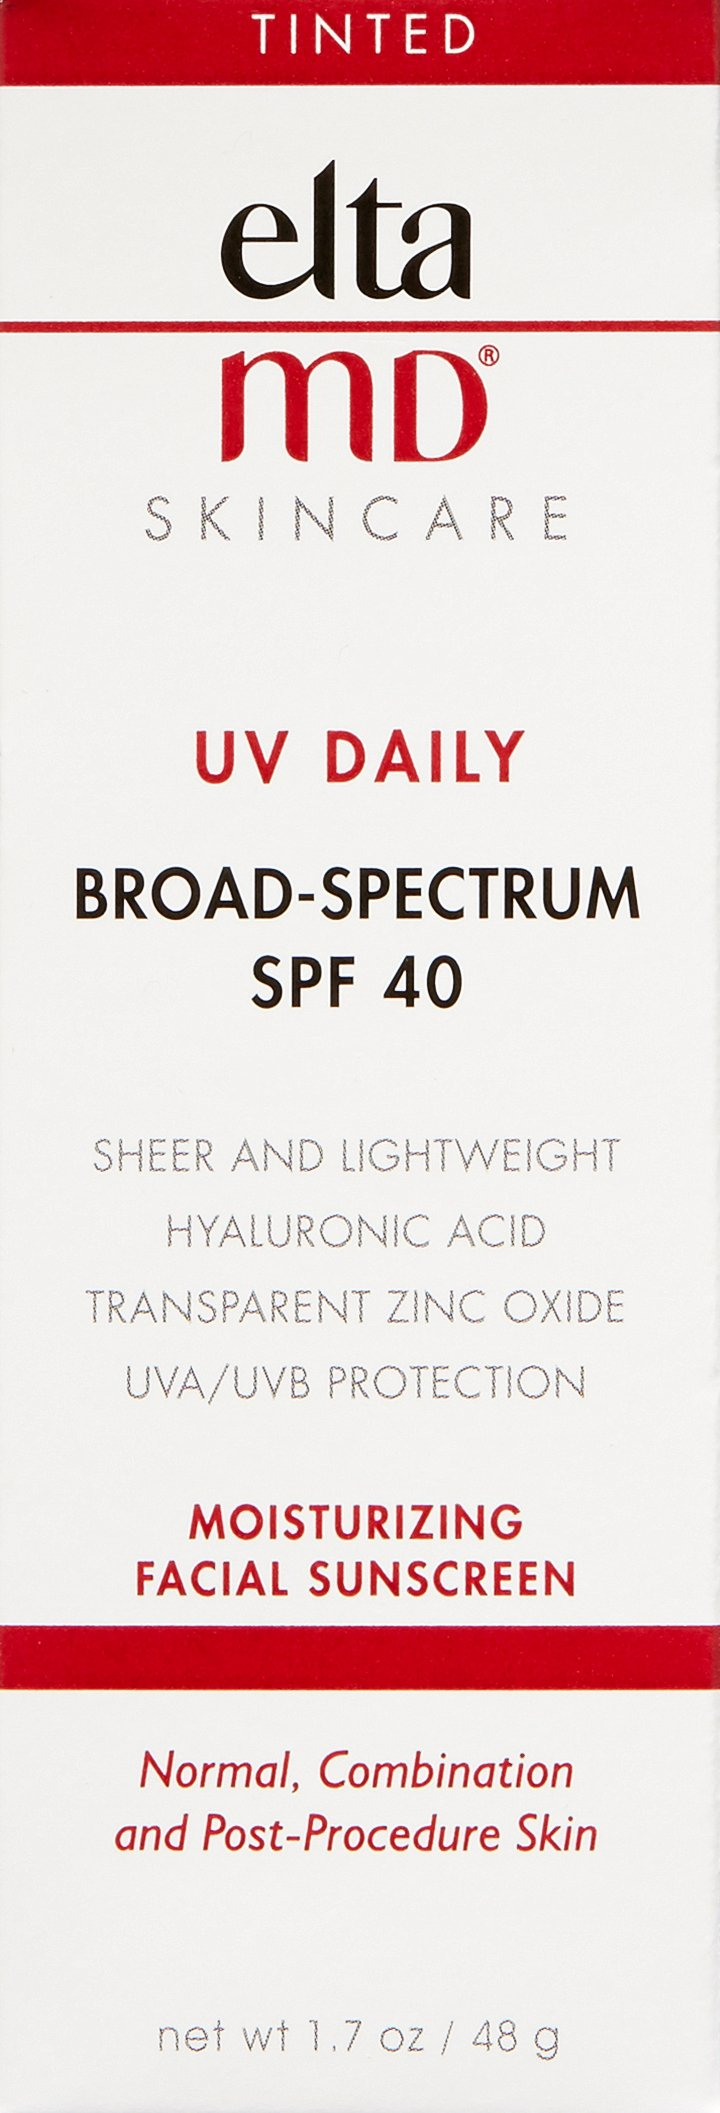 EltaMD UV Daily Tinted Face Sunscreen Moisturizer with Hyaluronic Acid, Broad Spectrum SPF 40, Non greasy, Sheer Lotion, Mineral-Based Sun Protection, 1.7 oz